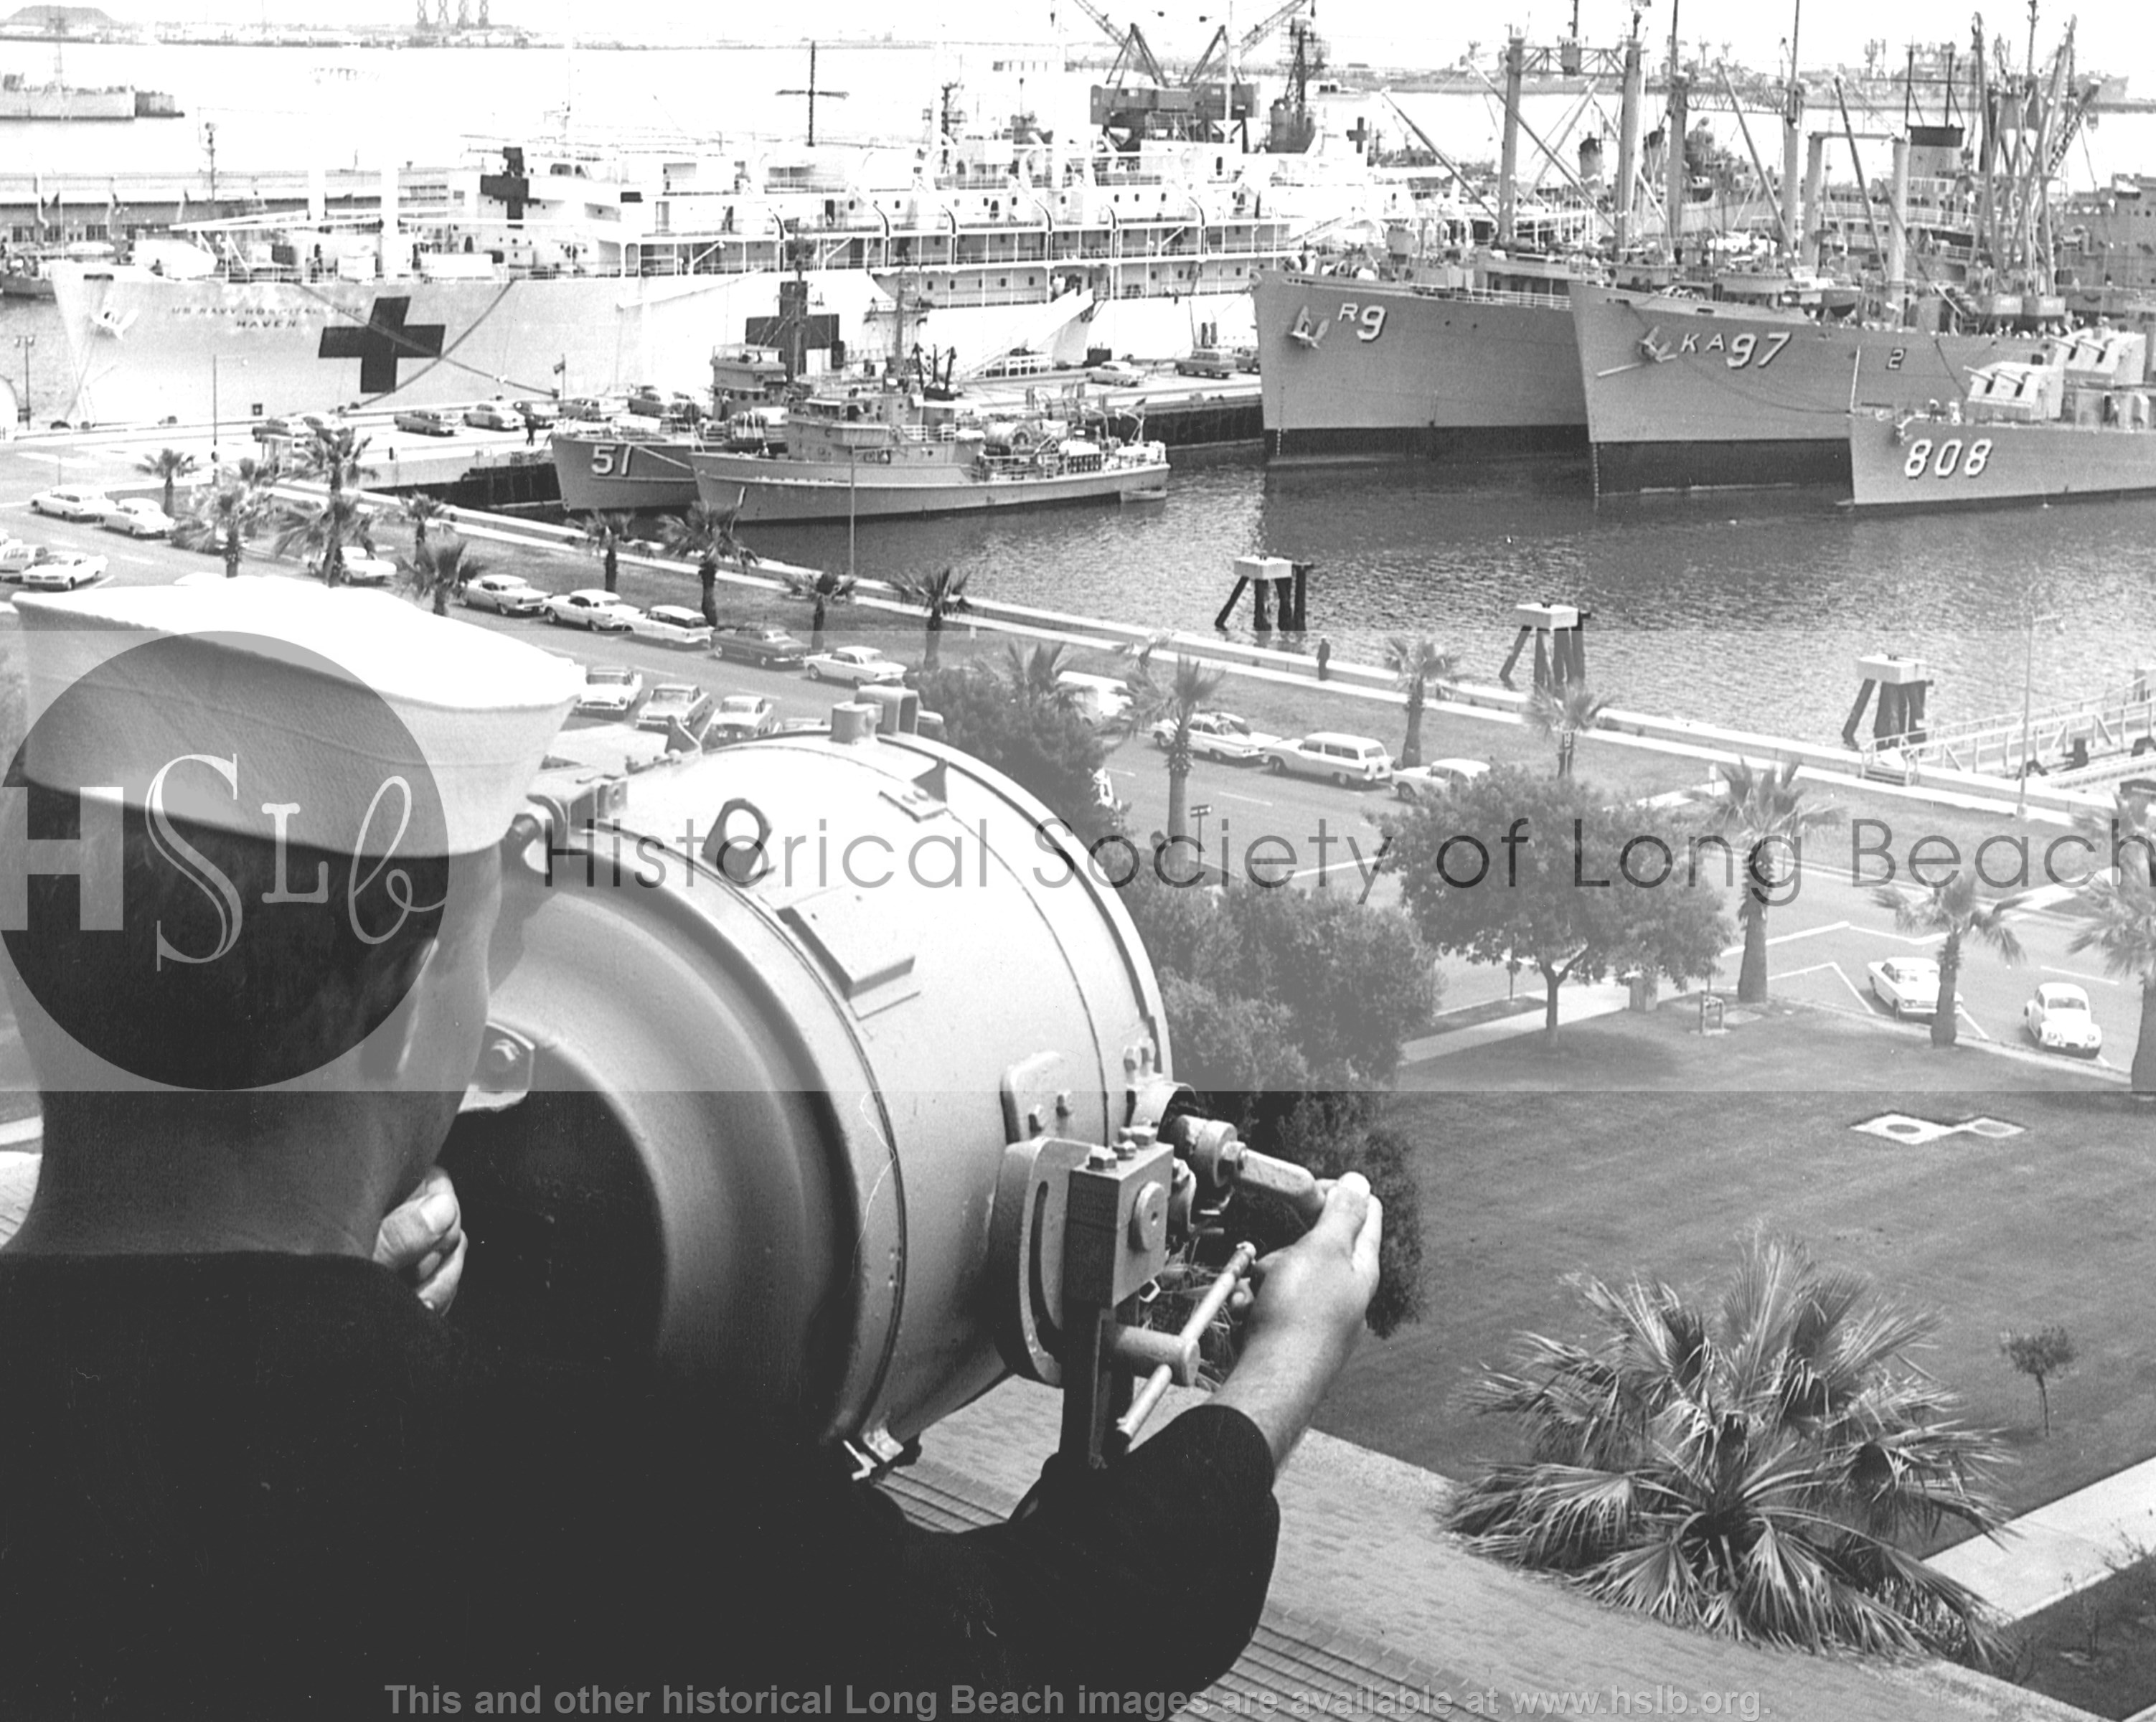 Navy harbor lookout, vintage photograph